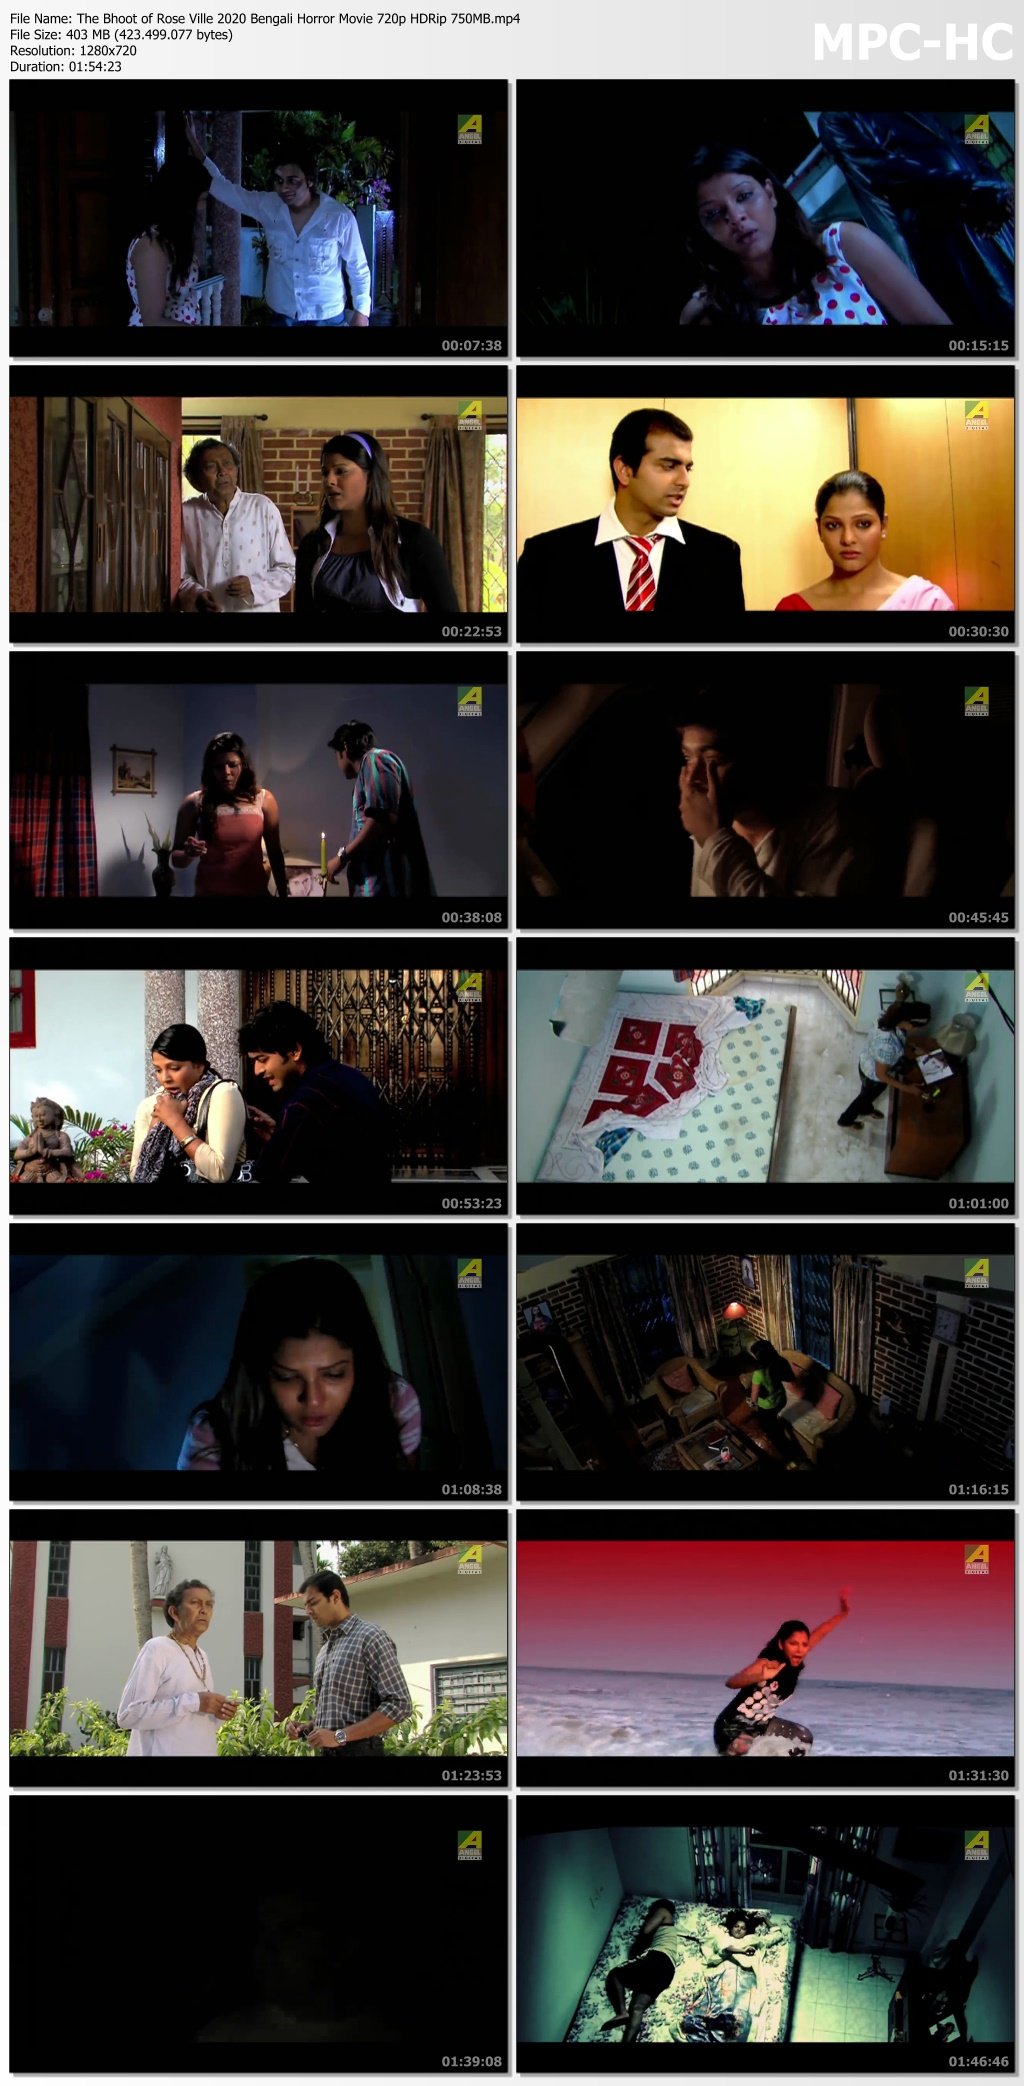 The-Bhoot-of-Rose-Ville-2020-Bengali-Horror-Movie-720p-HDRip-750-MB-mp4-thumbs